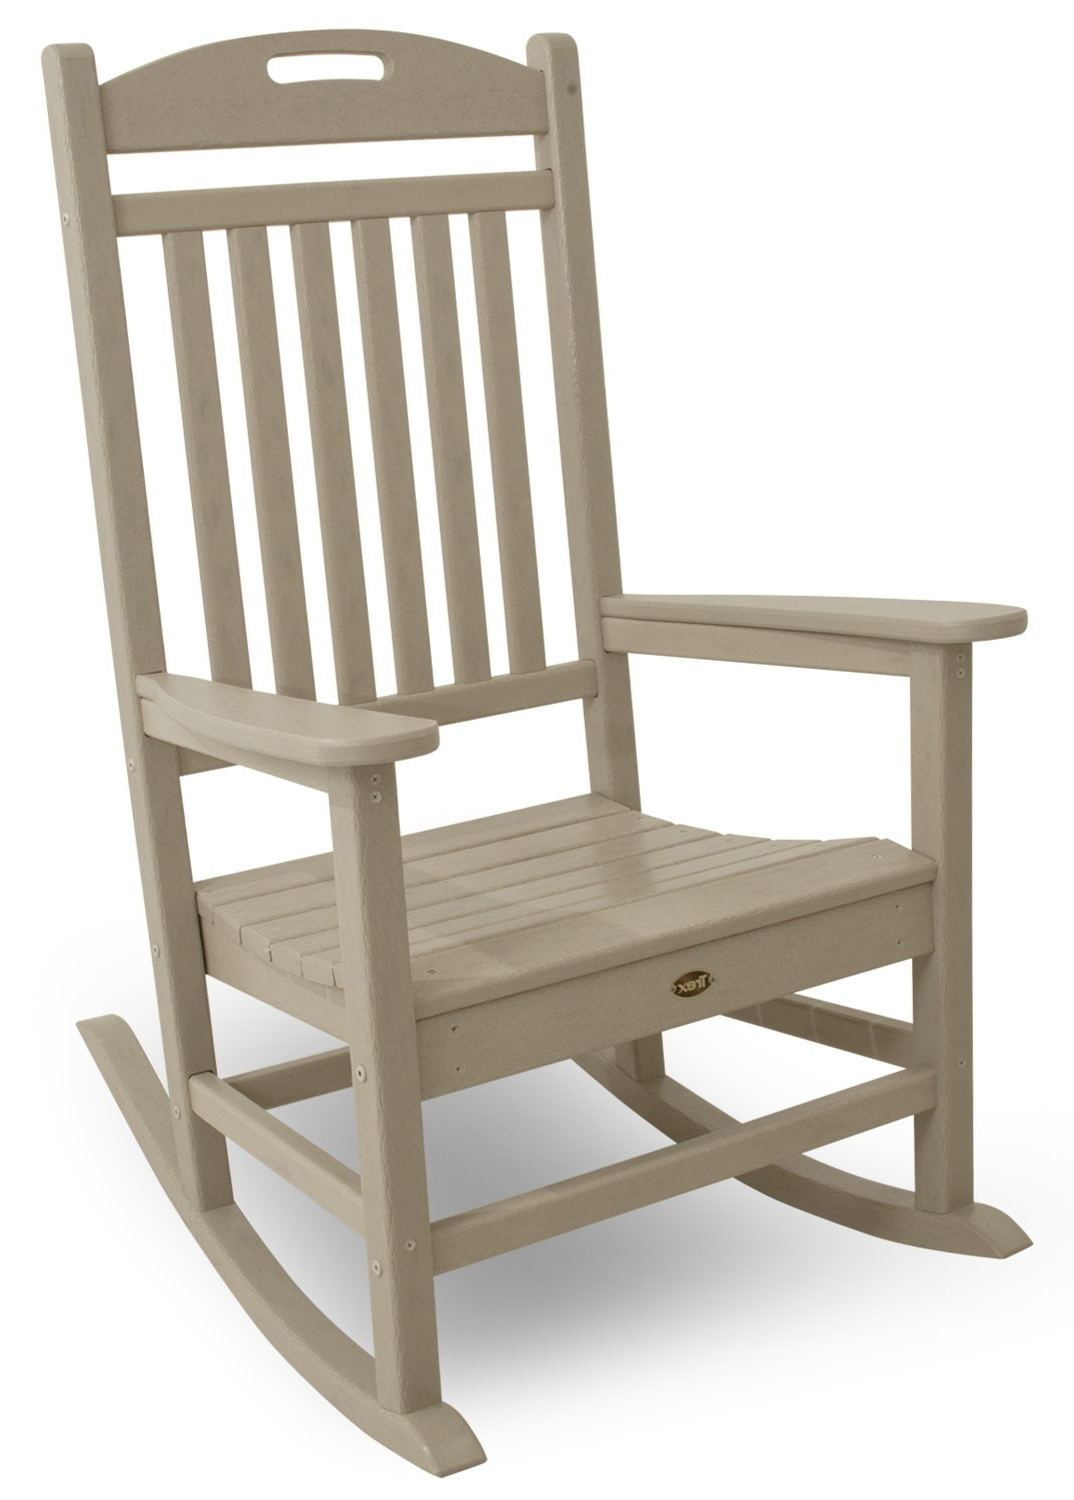 Famous Yacht Club Rocking Chair Intended For Patio Rocking Chairs (View 8 of 20)